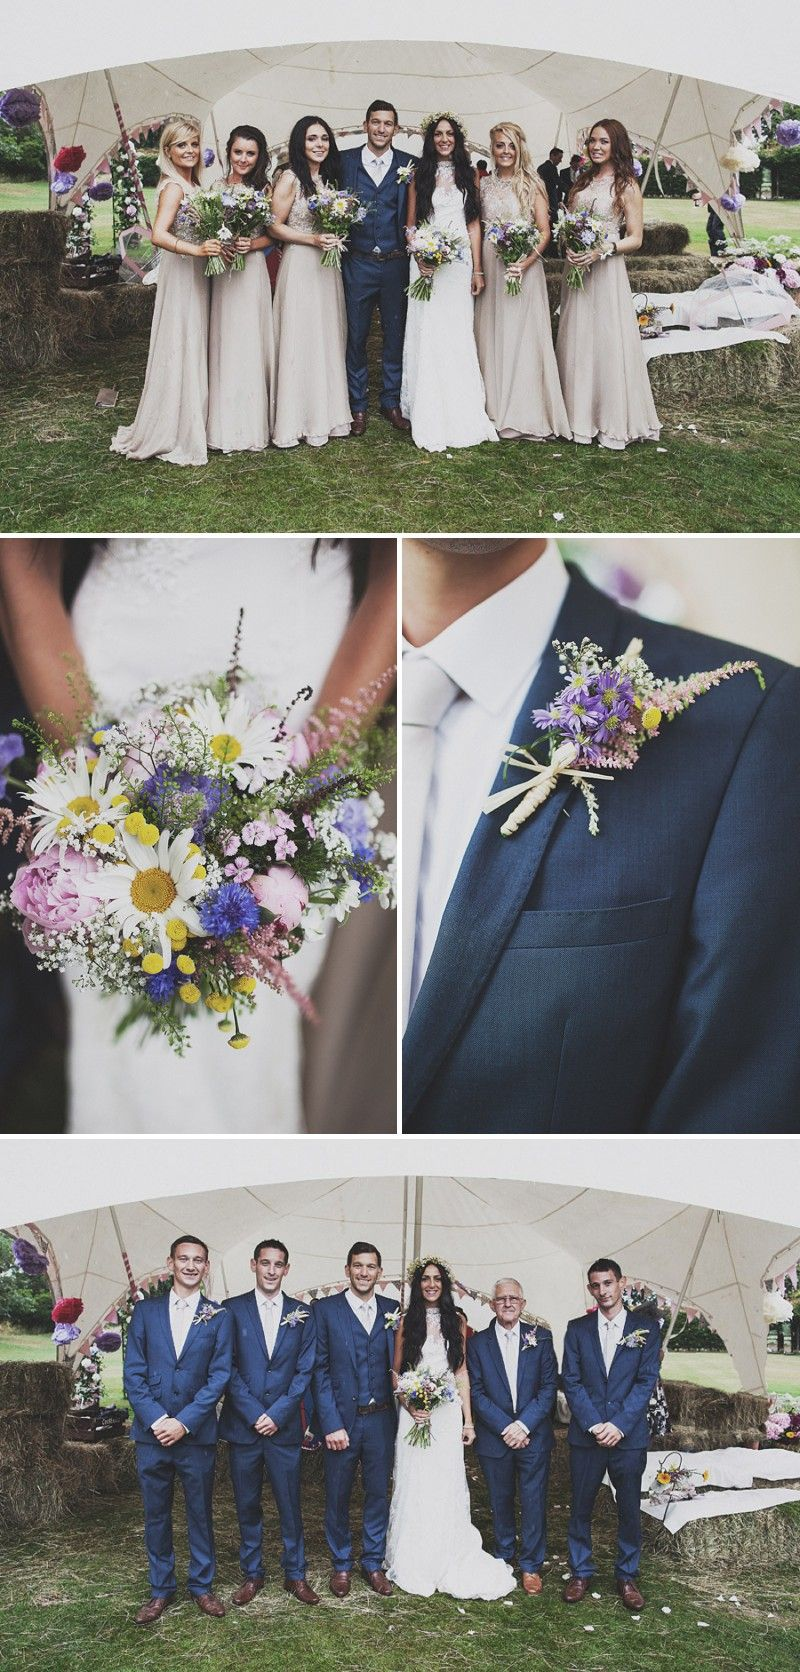 A festival inspired bohemian wedding with wildflowers and a floral